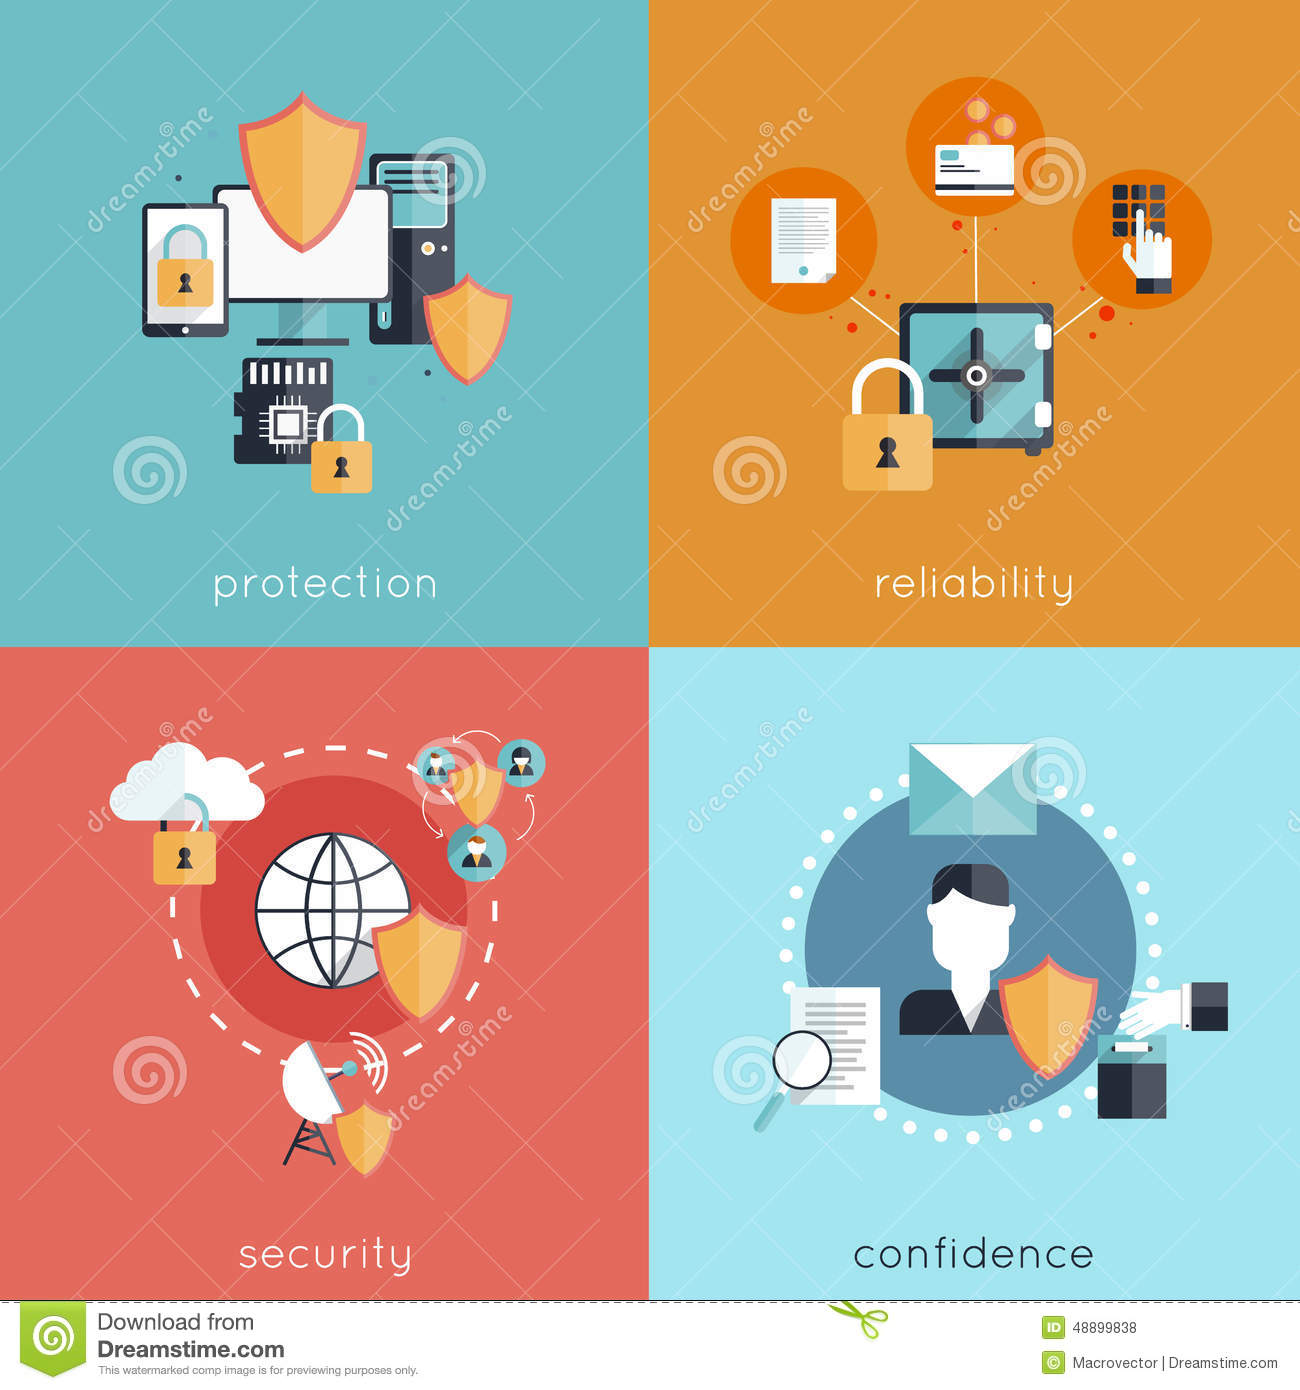 Stock Illustration Information Security Flat Design Concept Set Protection Reliability Confidence Icons Isolated Vector Image48899838 on 56